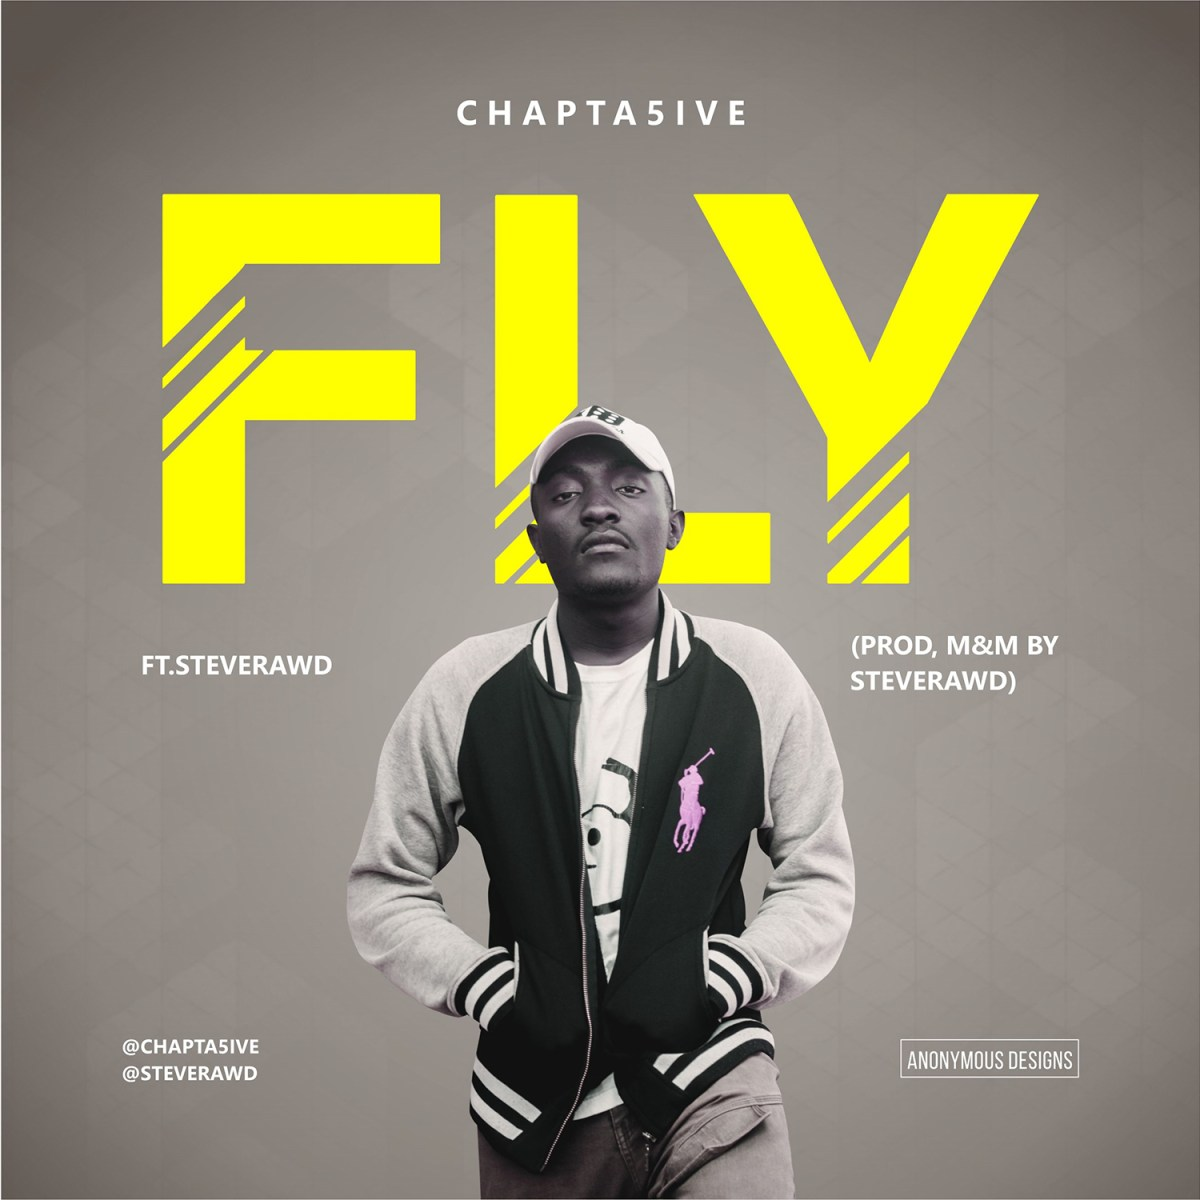 Fly Ft. SteveRawd (Produced By